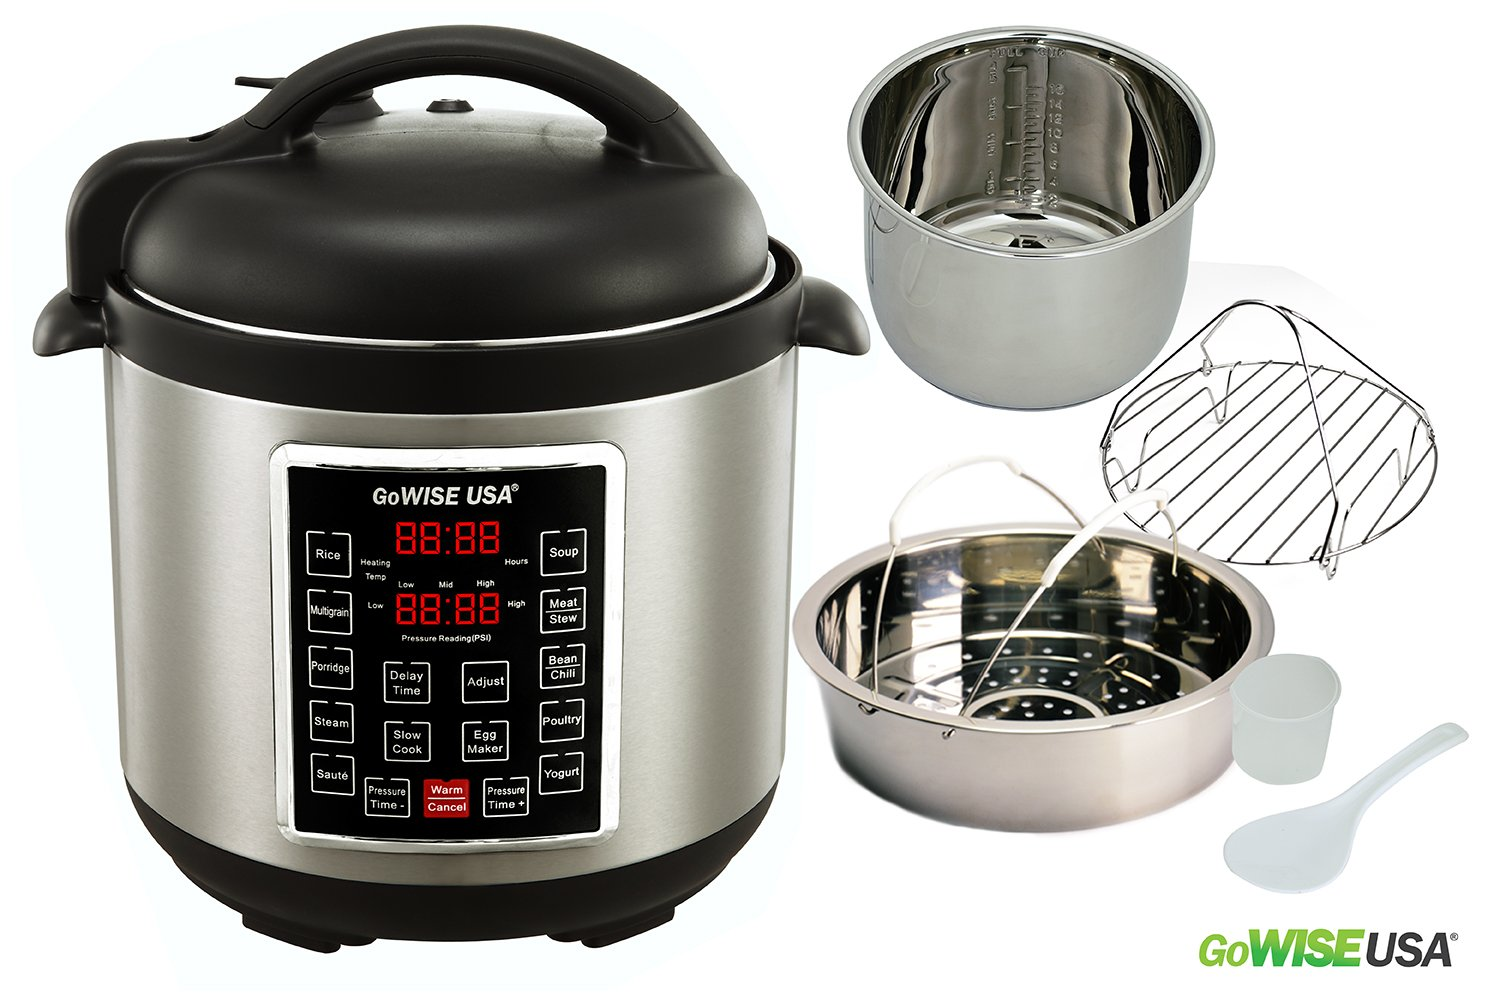 GoWISE USA 8-Quart Programmable 10-in-1 Electric Pressure Cooker/Slow Cooker, GW22623